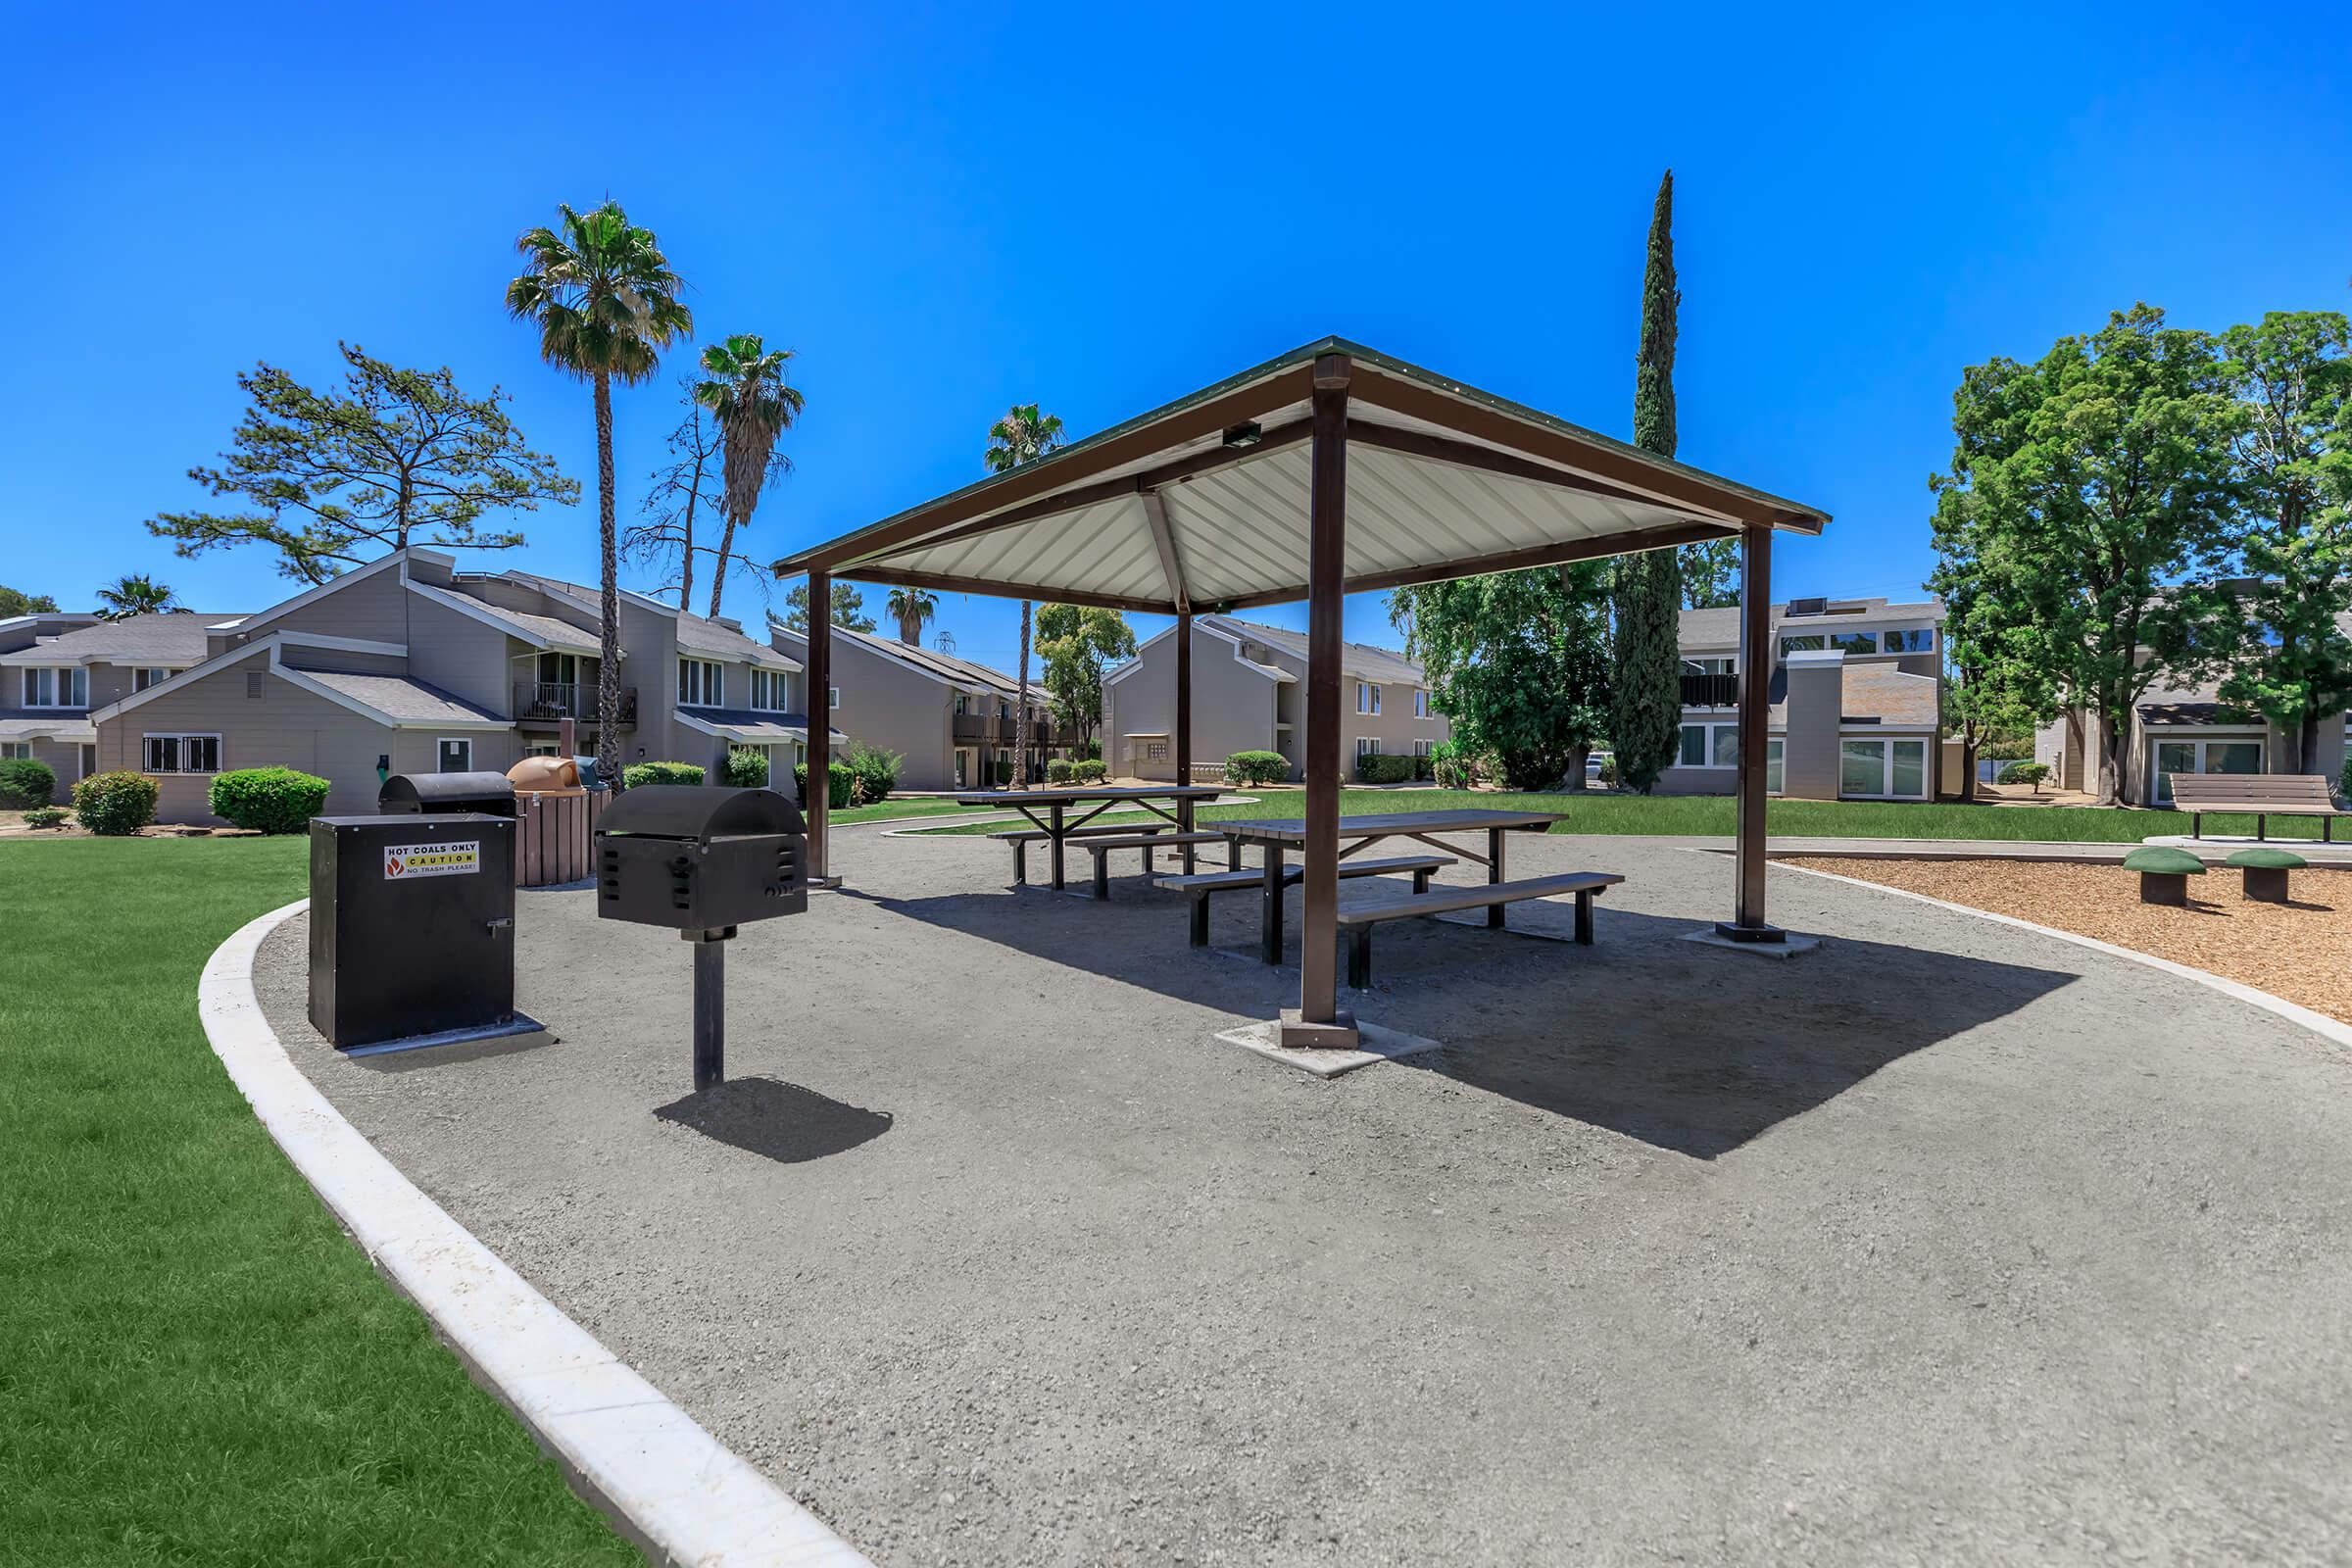 The Parks at Fig Garden barbecue and picnic table